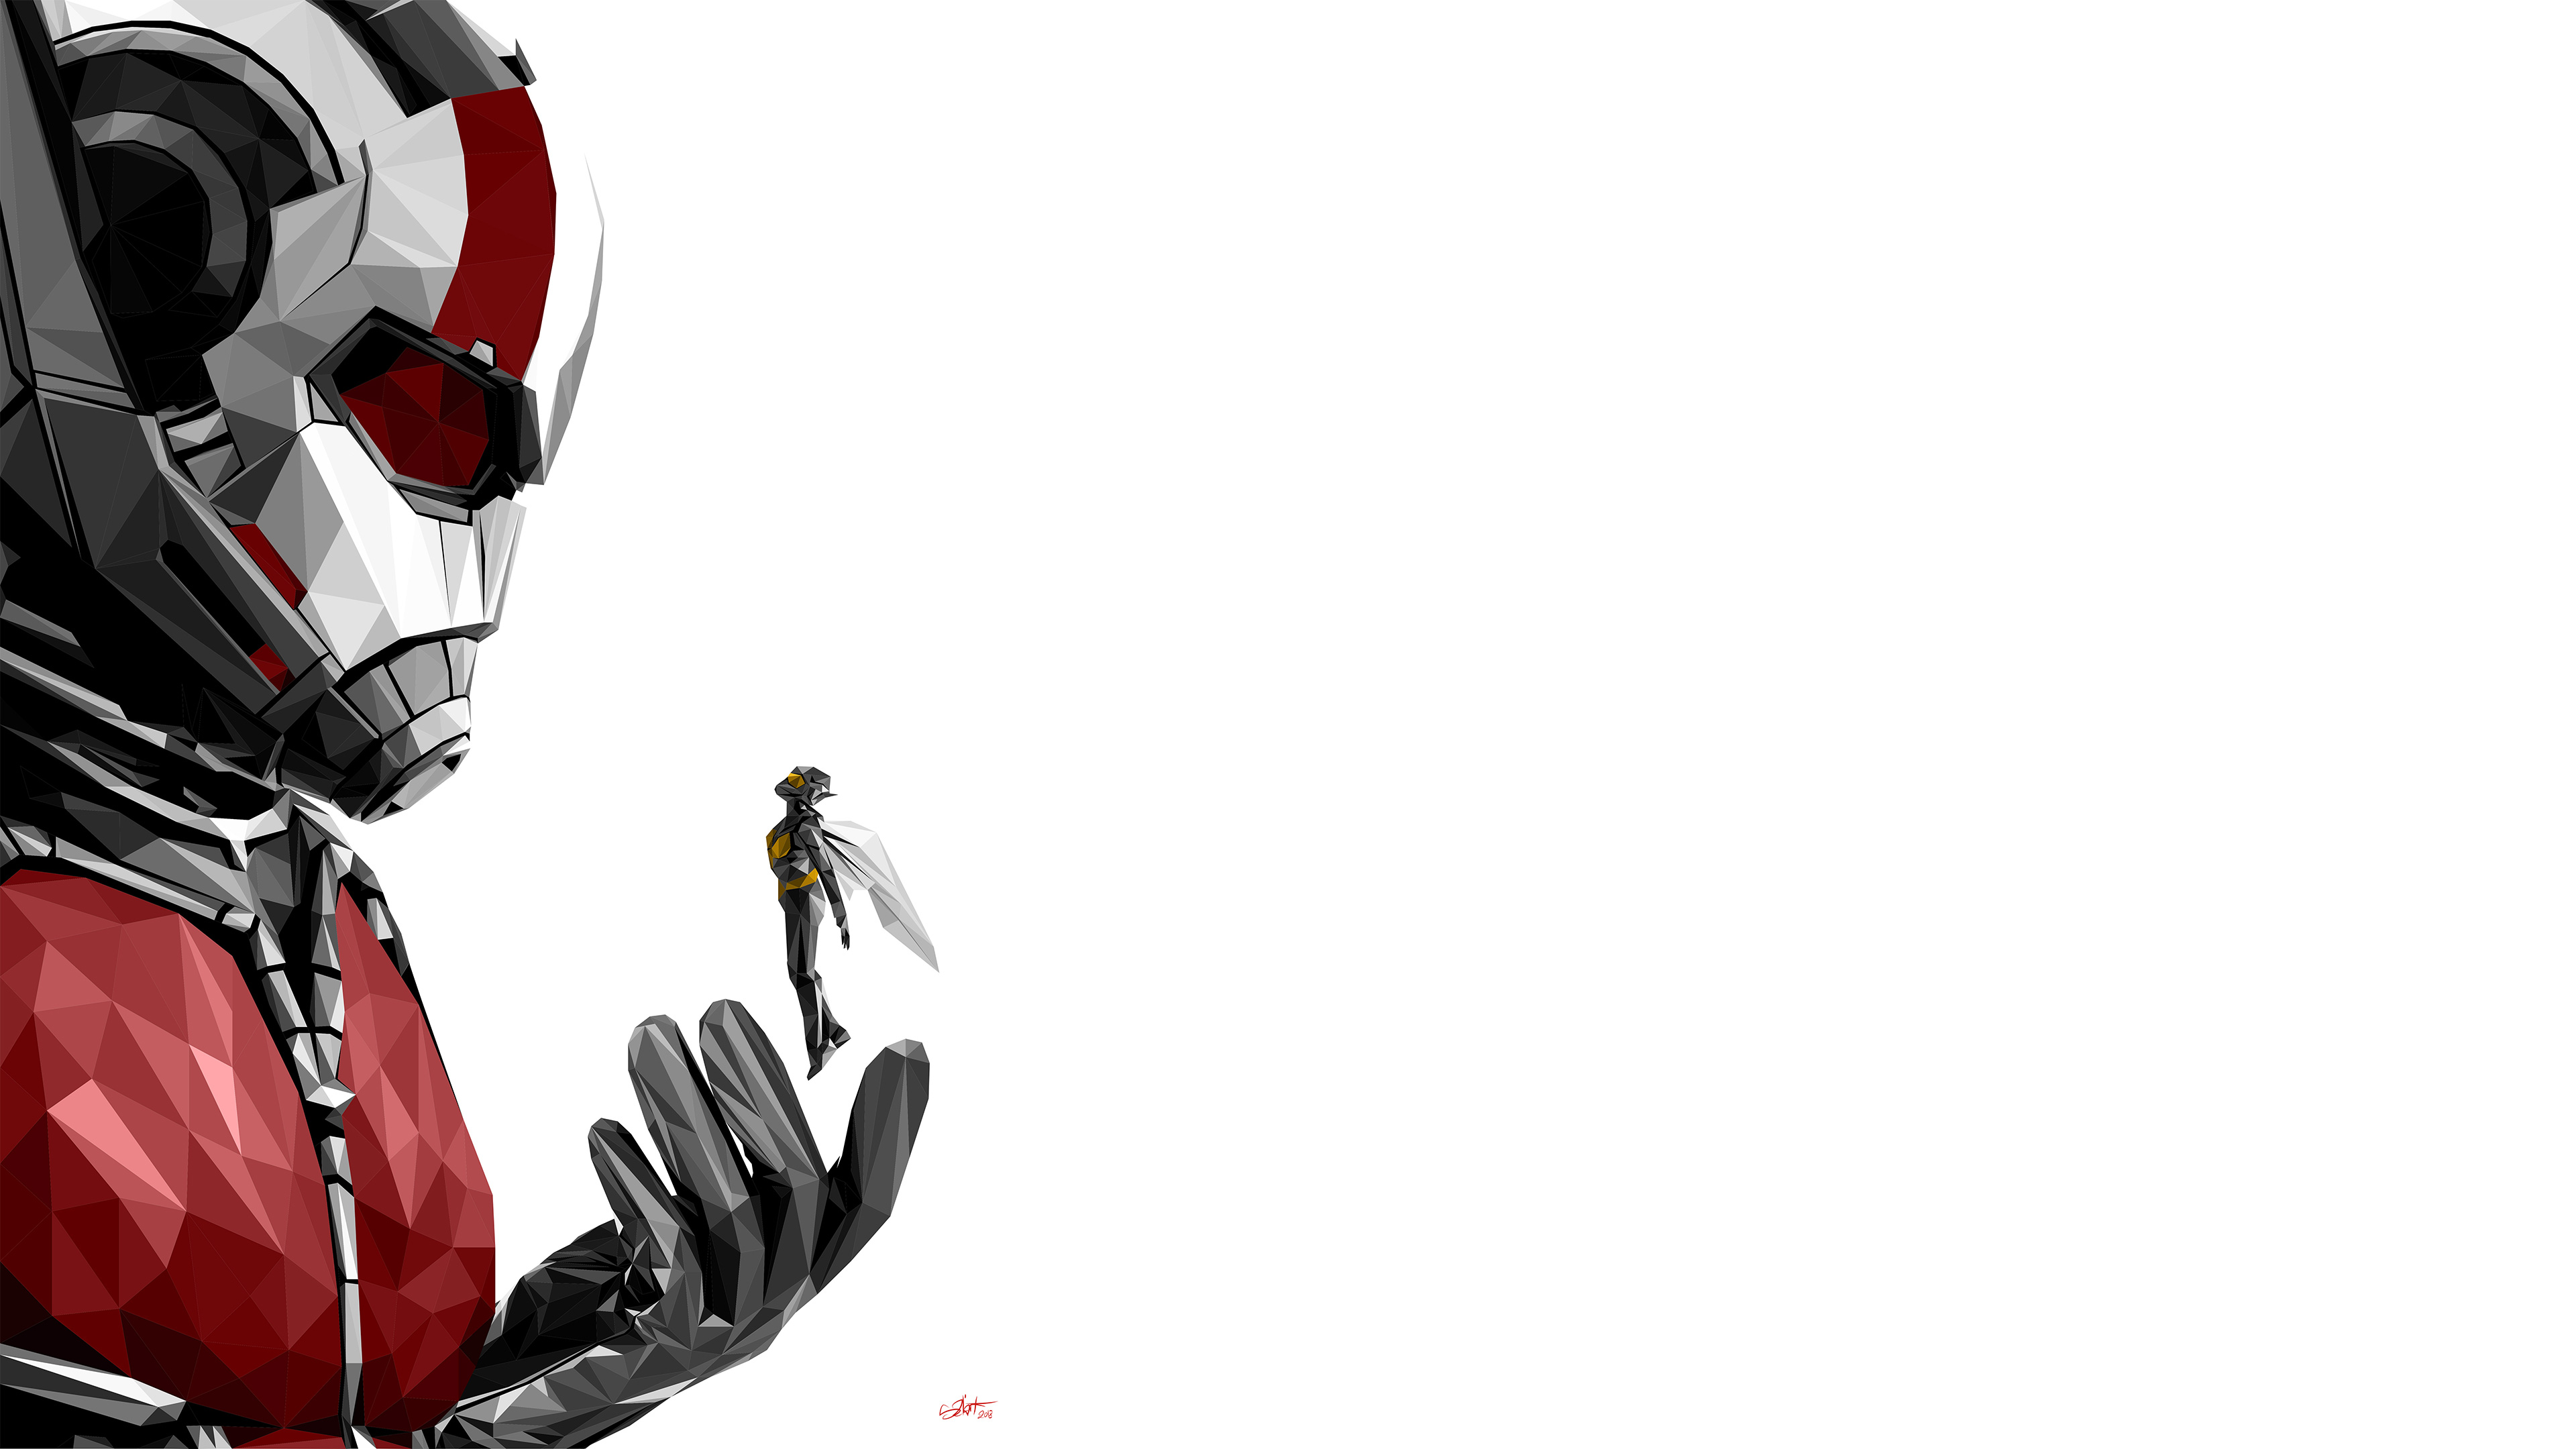 ant man and the wasp movie 4k 1537645157 - Ant Man And The Wasp Movie 4k - movies wallpapers, hd-wallpapers, digital art wallpapers, behance wallpapers, artist wallpapers, ant man wallpapers, ant man and the wasp wallpapers, 4k-wallpapers, 2018-movies-wallpapers